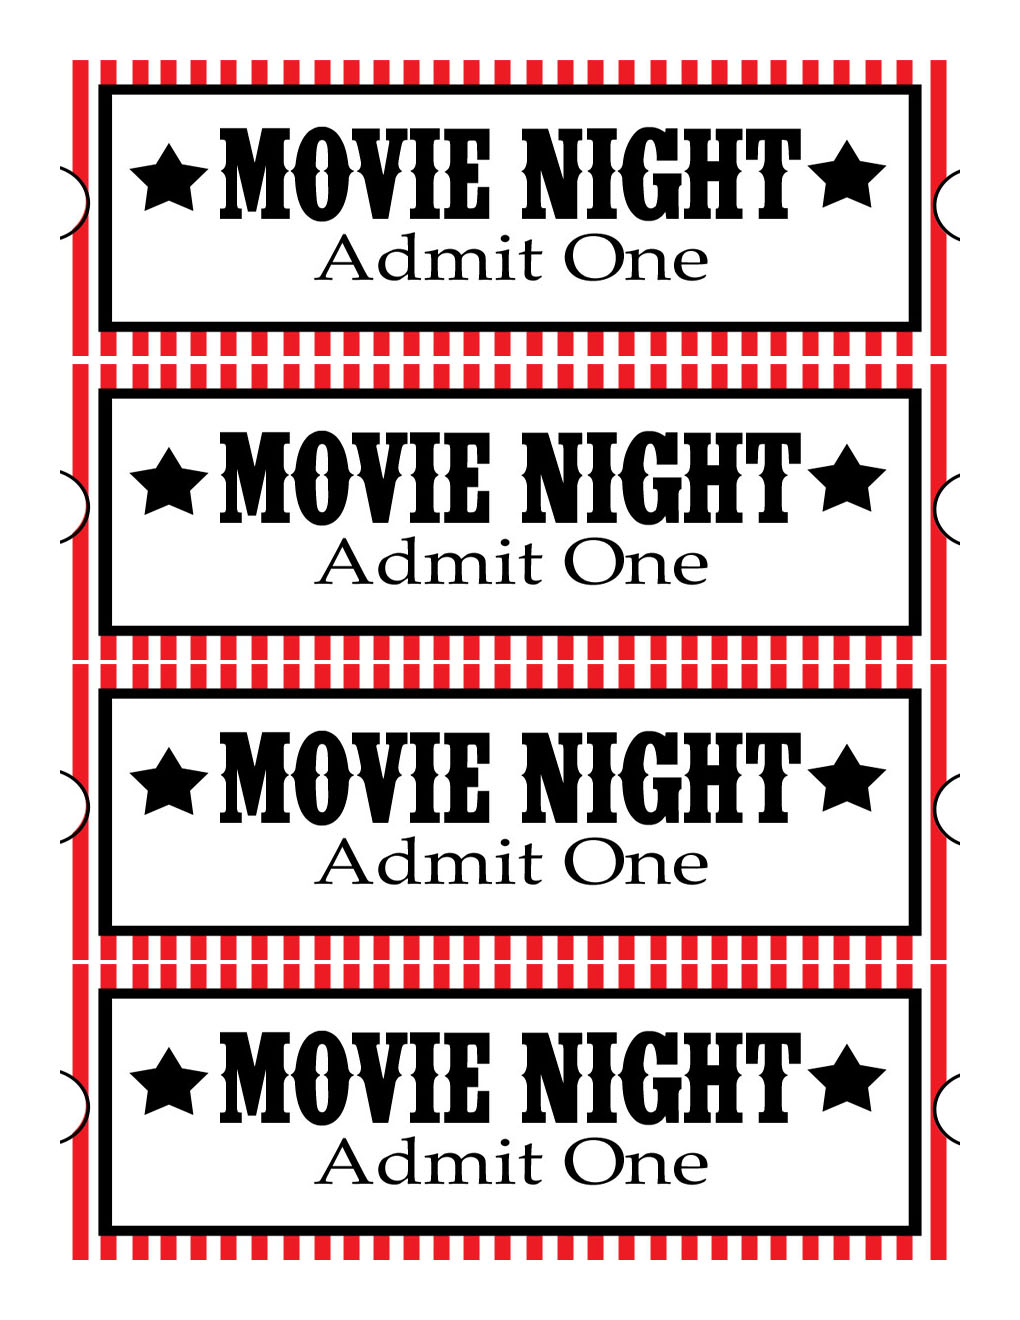 doc movie ticket templates for word make your own movie printable movie tickets movie ticket templates for word 40 editable raffle